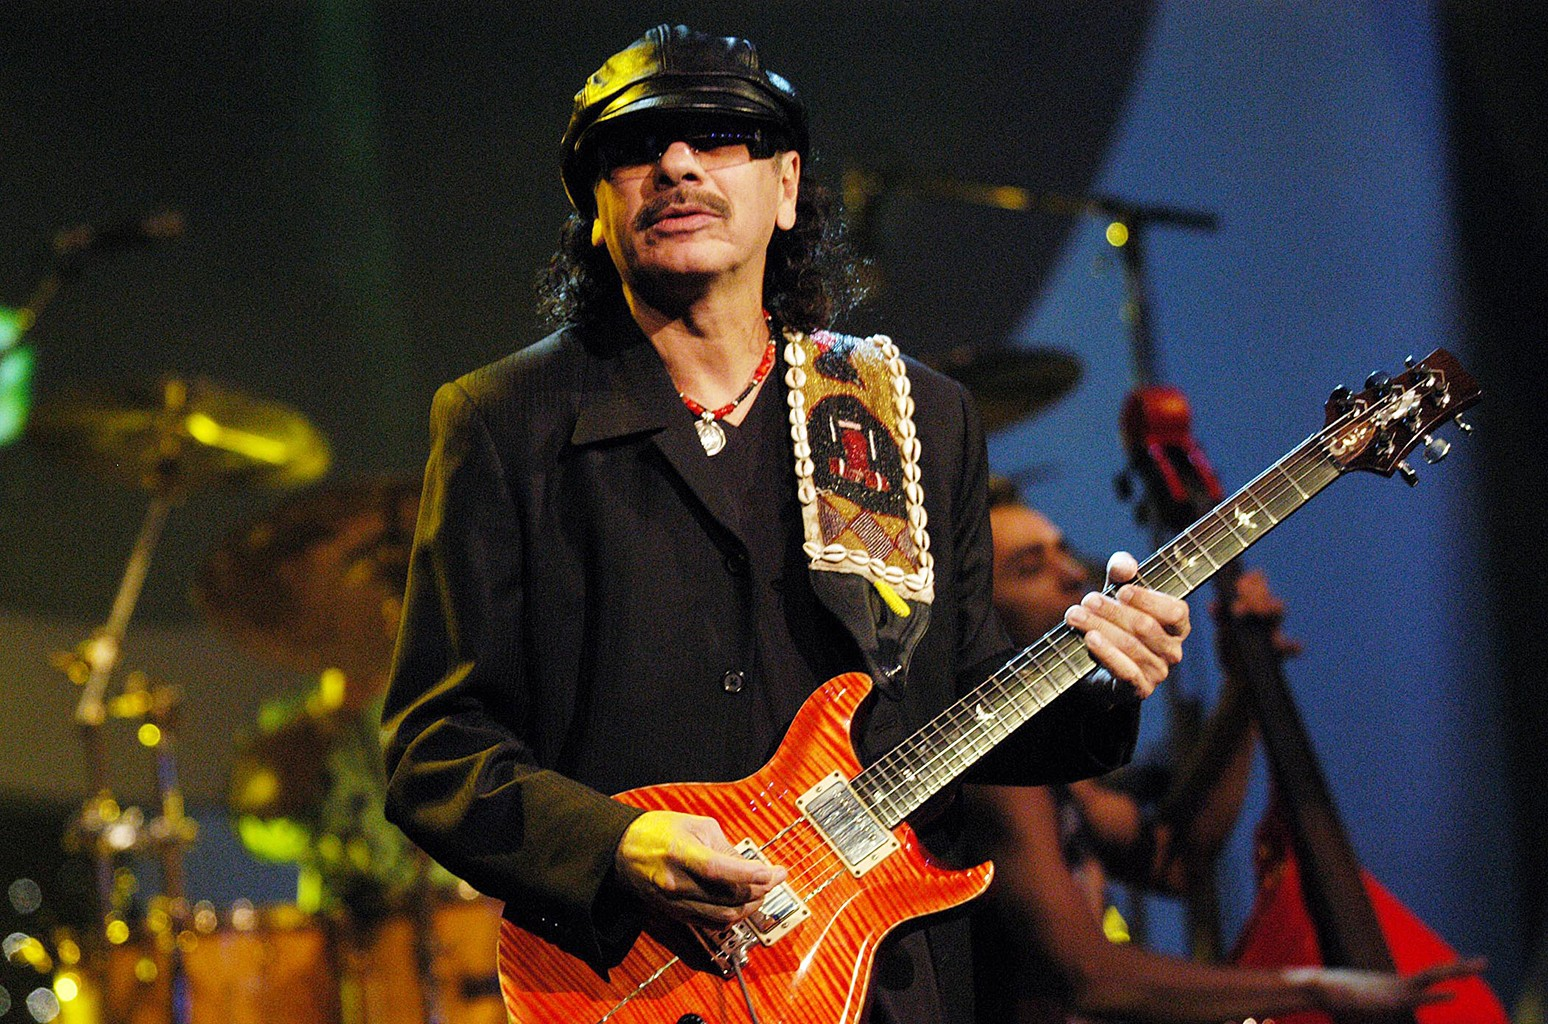 Carlos Santana performs at Jackie Gleason Theater in Miami in 2002.